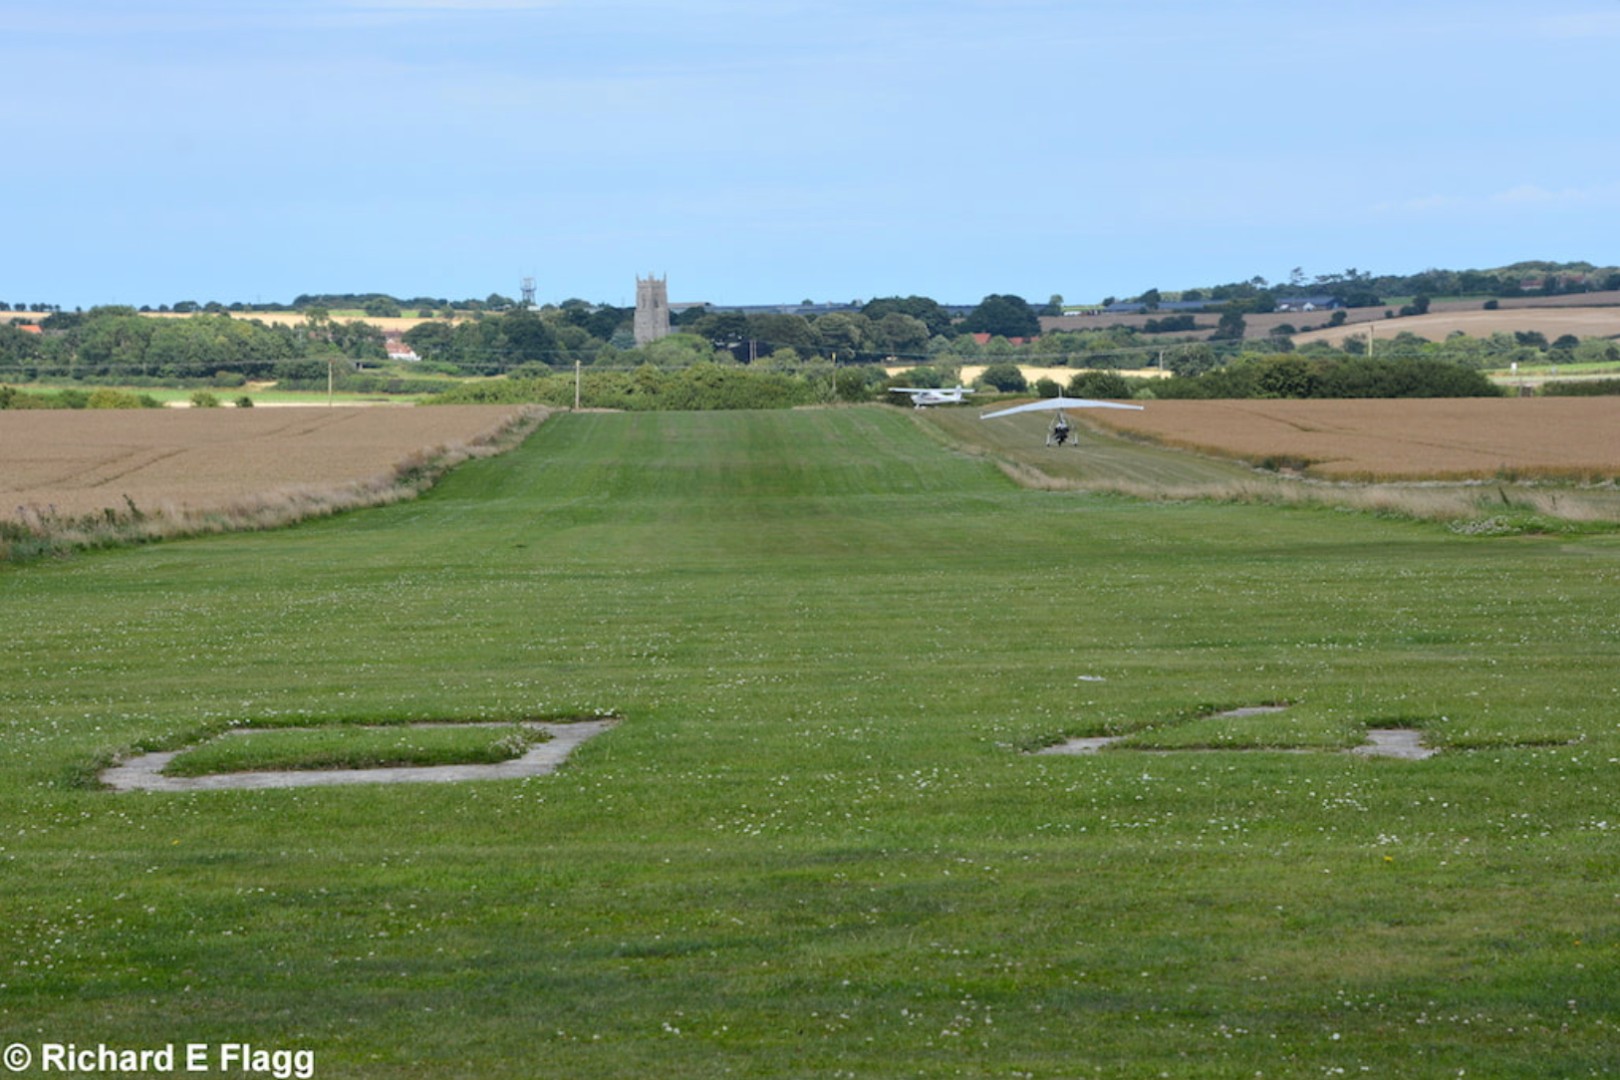 006Runway 04:22. Looking north east from the runway 04 threshold - 22 July 2017.png